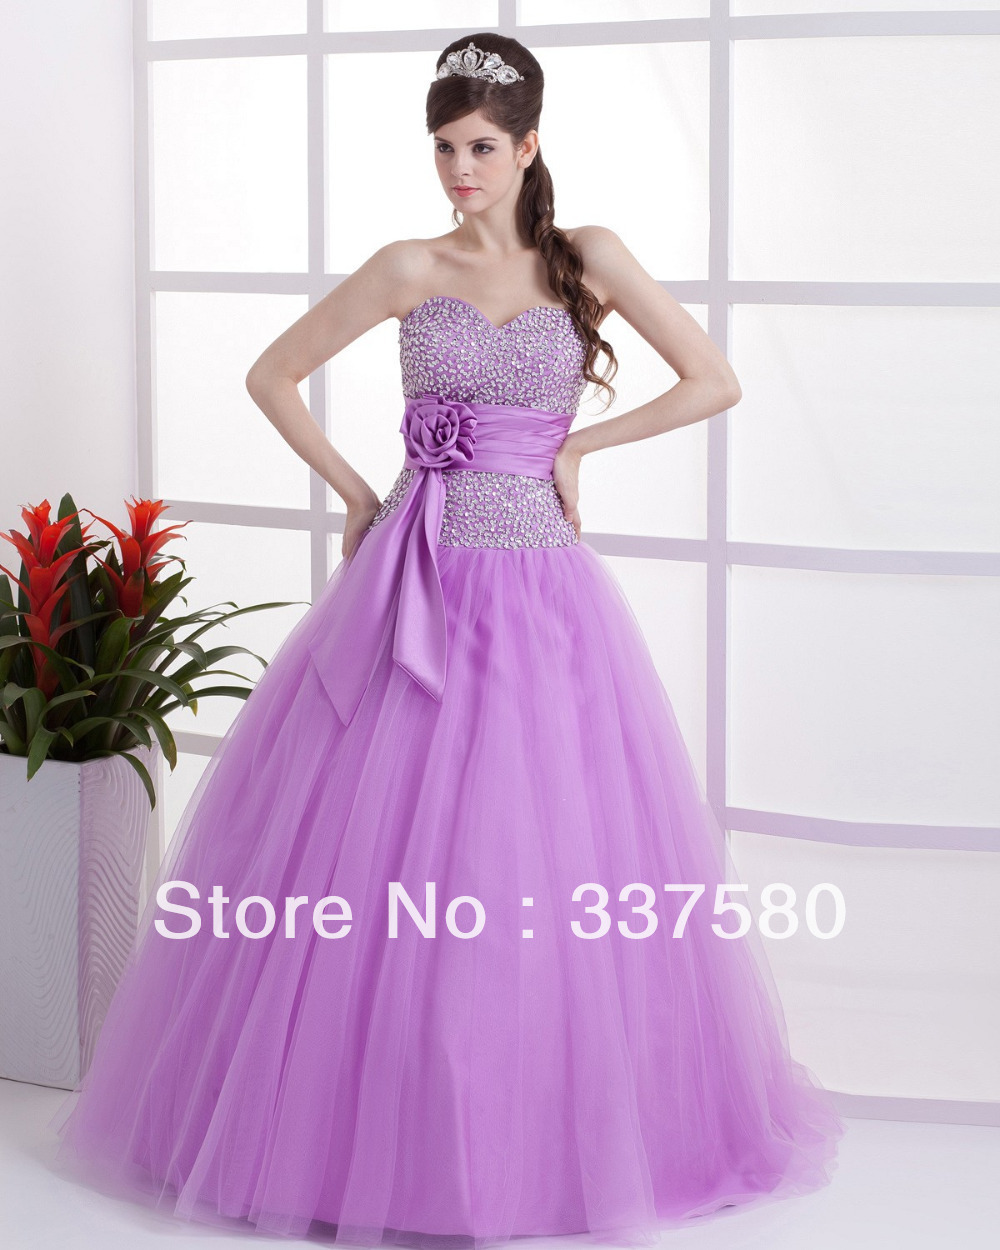 Wholesale Sweet 16 Purple Tulle Masquerade Dress with Sequins Flowers 1000x1250